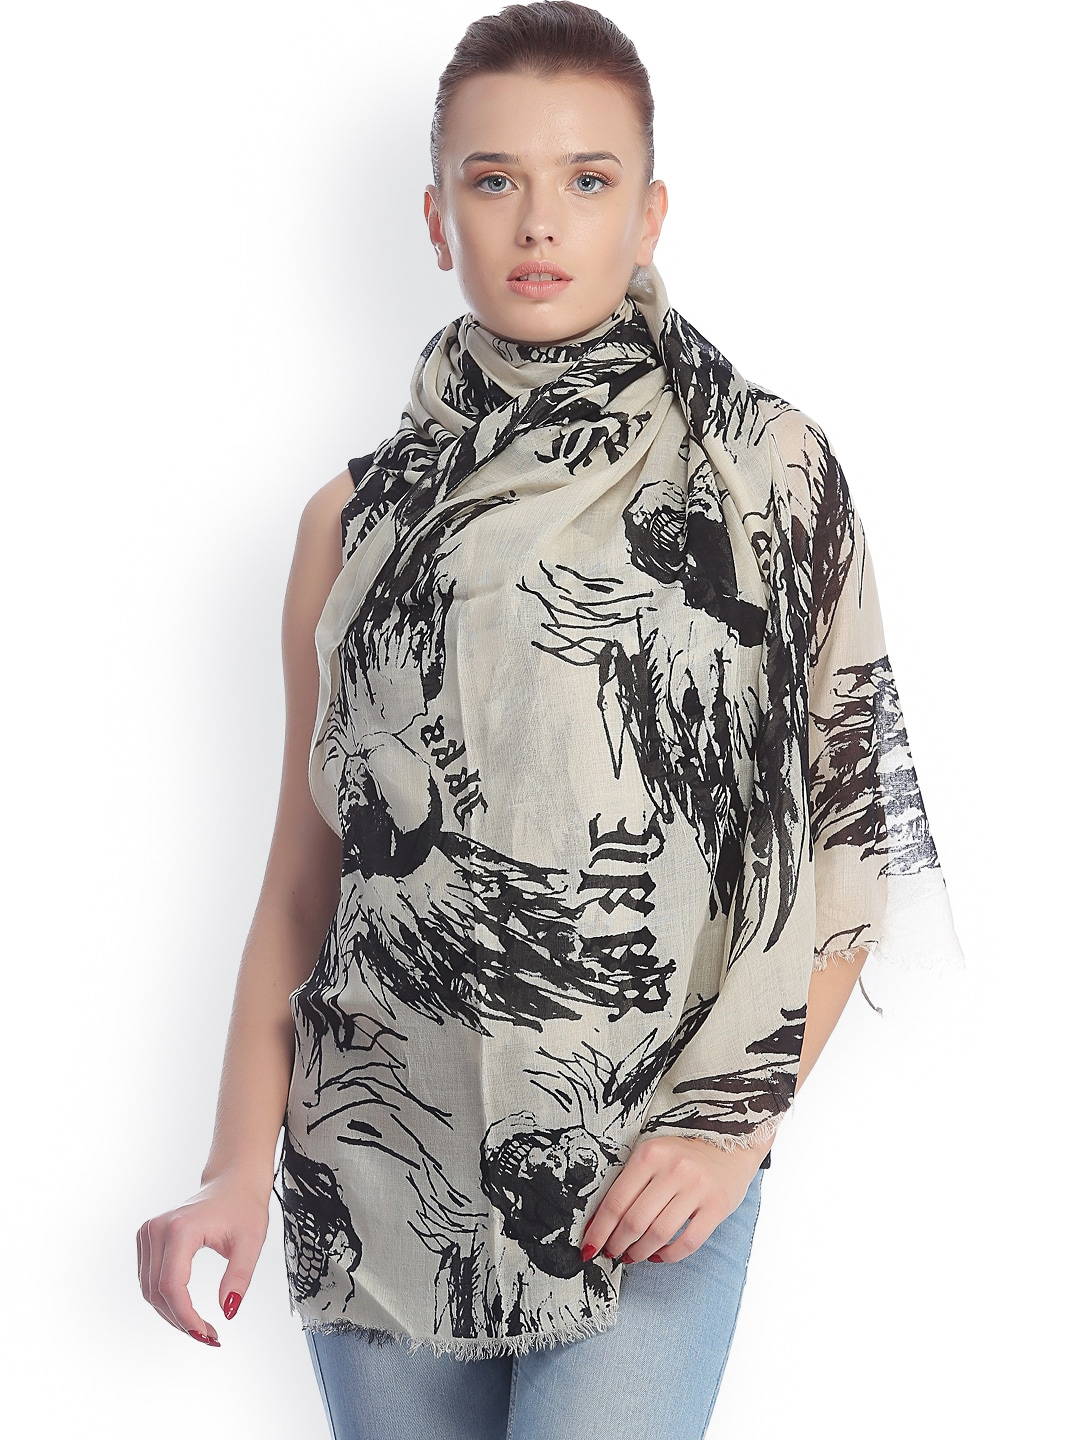 CoolThreads Off-White & Black Printed Stole